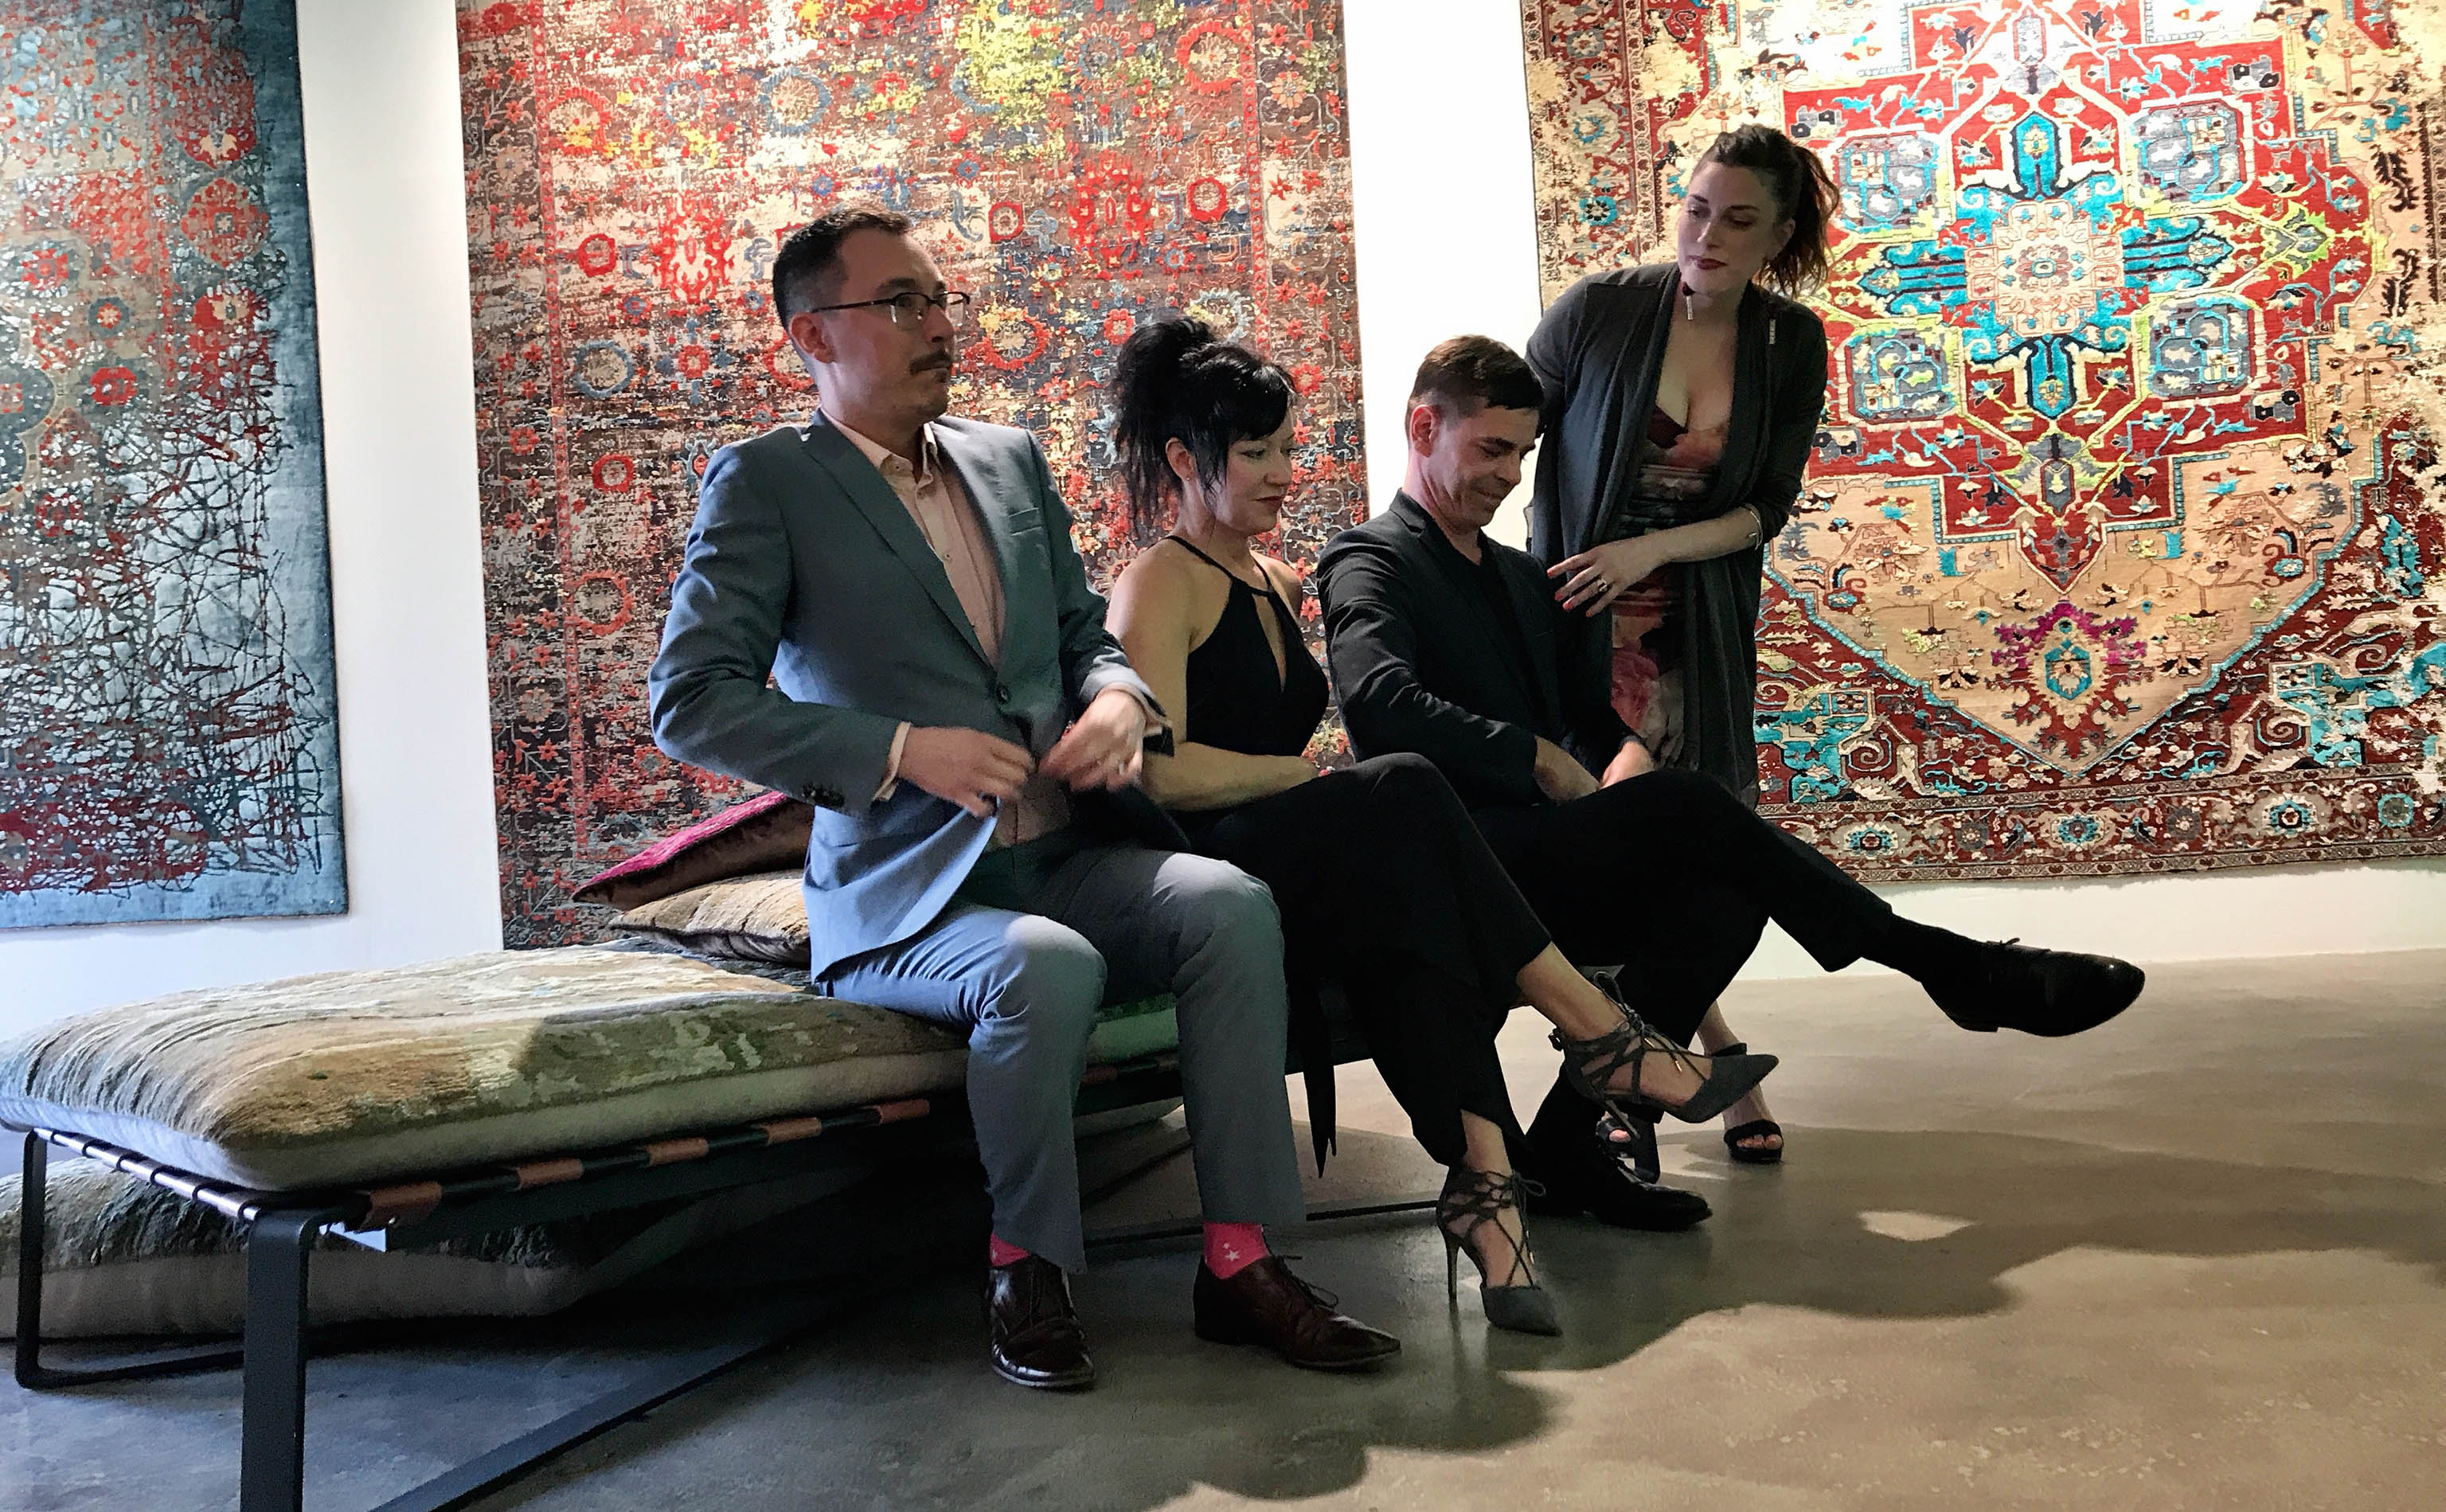 Yvan Semenowycz, Jenni Finlay, Jan Kath, and Robyn Waffle (left ot right) shown primping before the official photographer, Nancy Kim, snapped the group photo just as the opening party for Finlay and Kath's new Jan Kath Toronto showroom got underway on Thursday, 10 May 2018.   Image by The Ruggist.